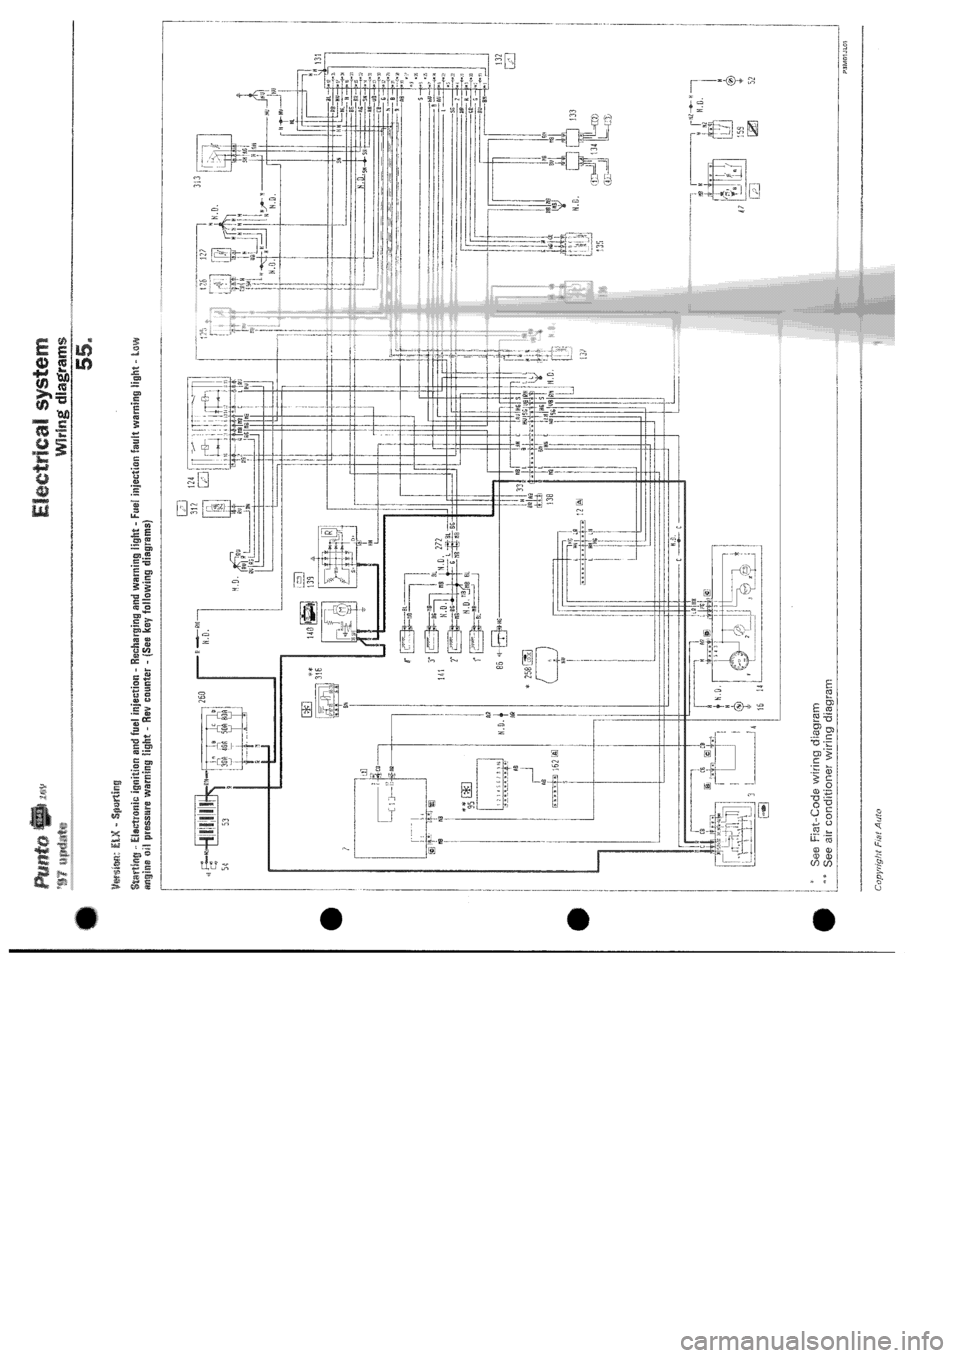 wiring diagram for fiat ducato wiring library 3-way switch wiring diagram w960_4692 1 fiat doblo wiring diagram manual fiat ducato \\u2022 indy500 co